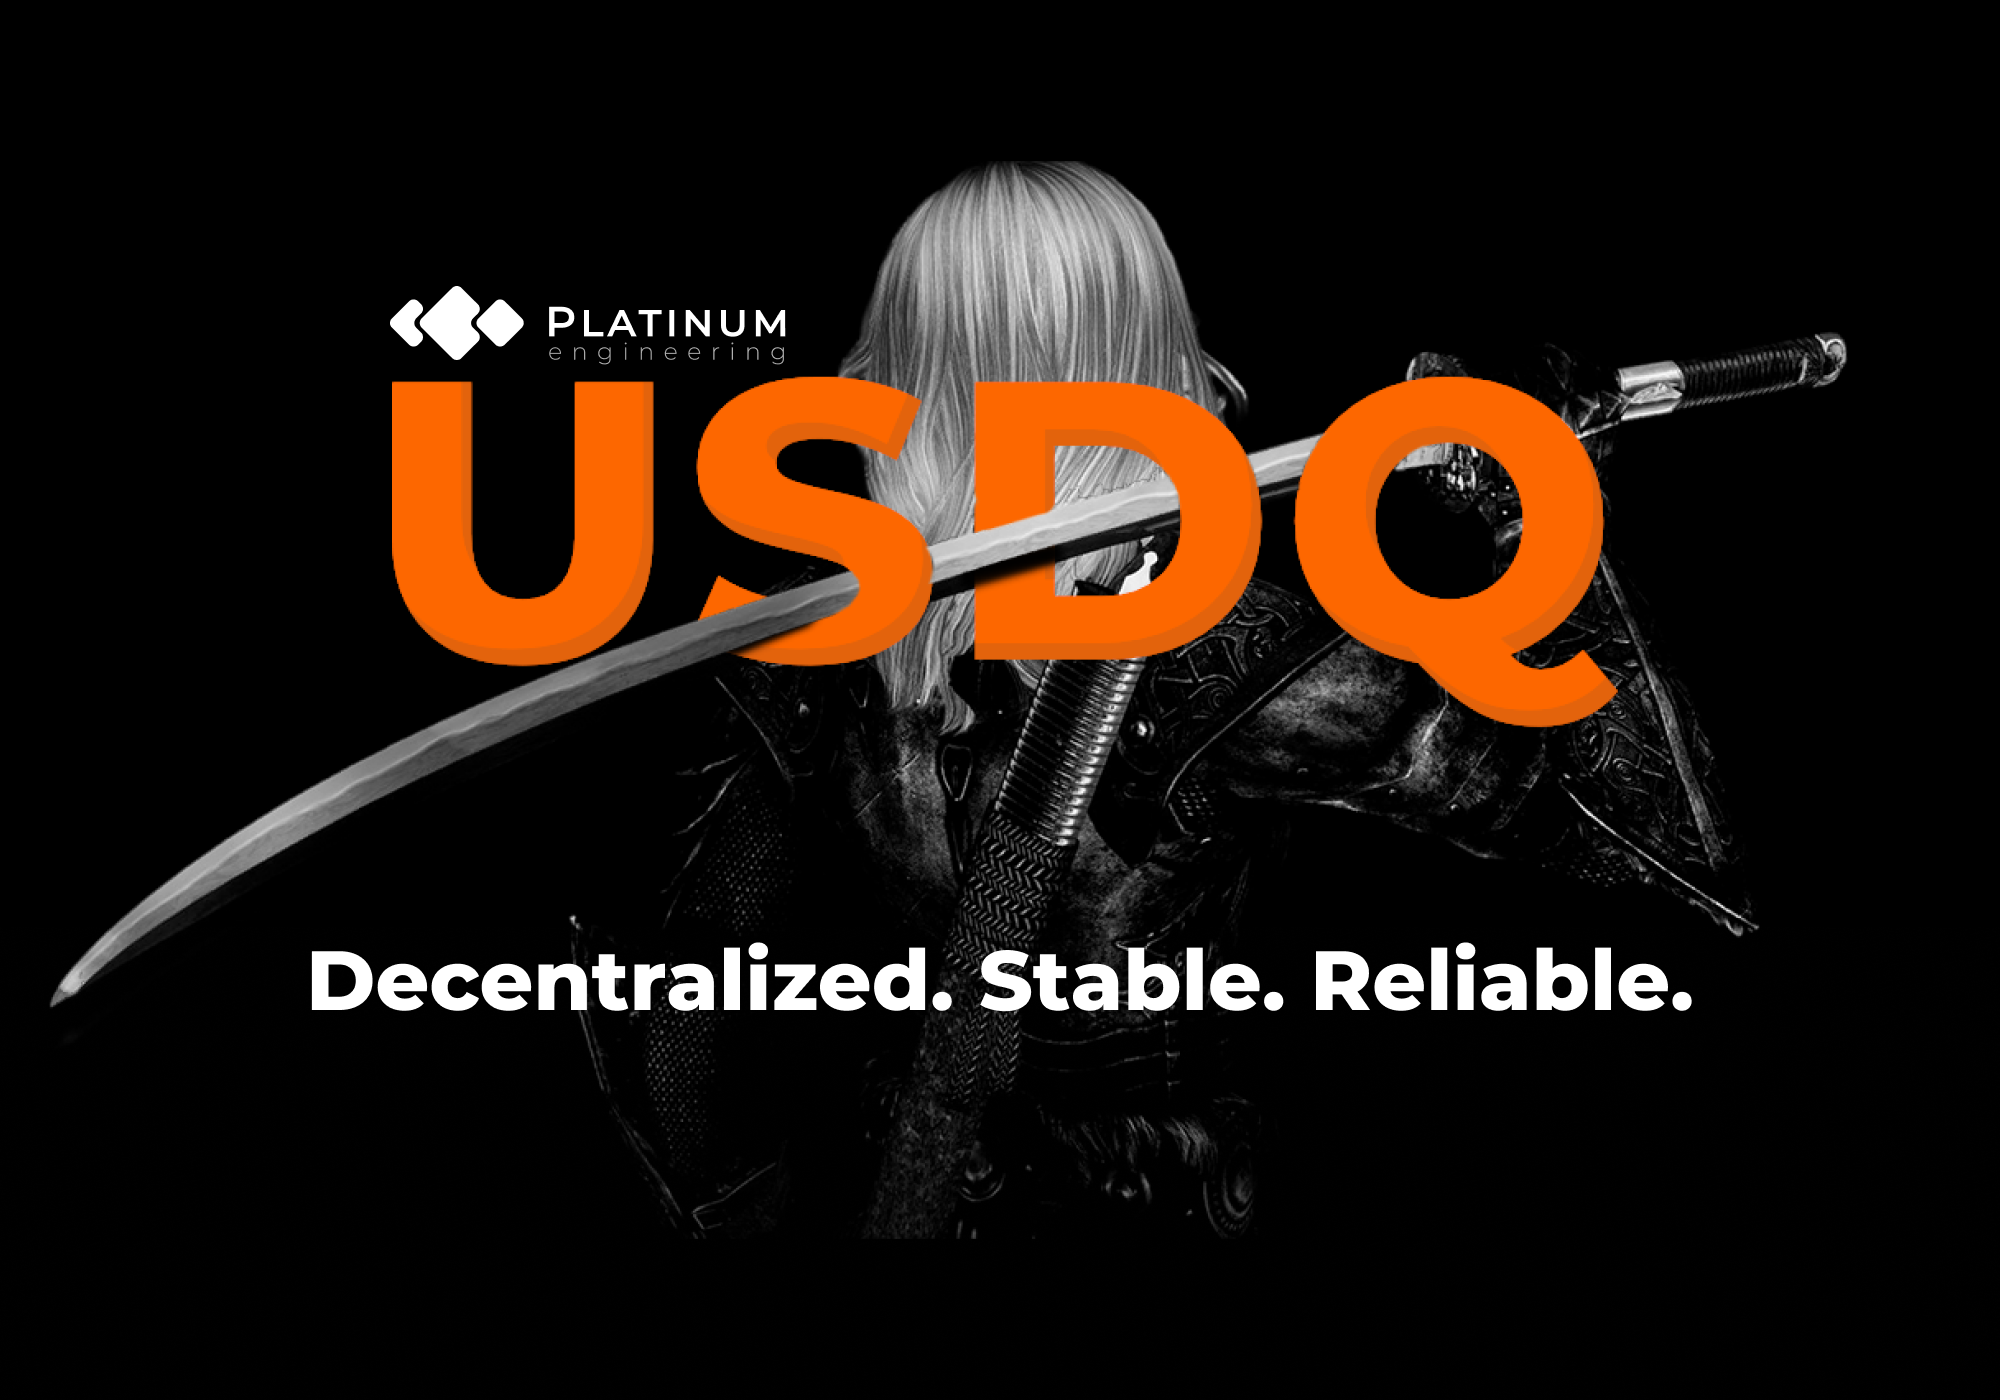 USDQ - The Newest Stablecoin on the Block is Being Developed by Platinum